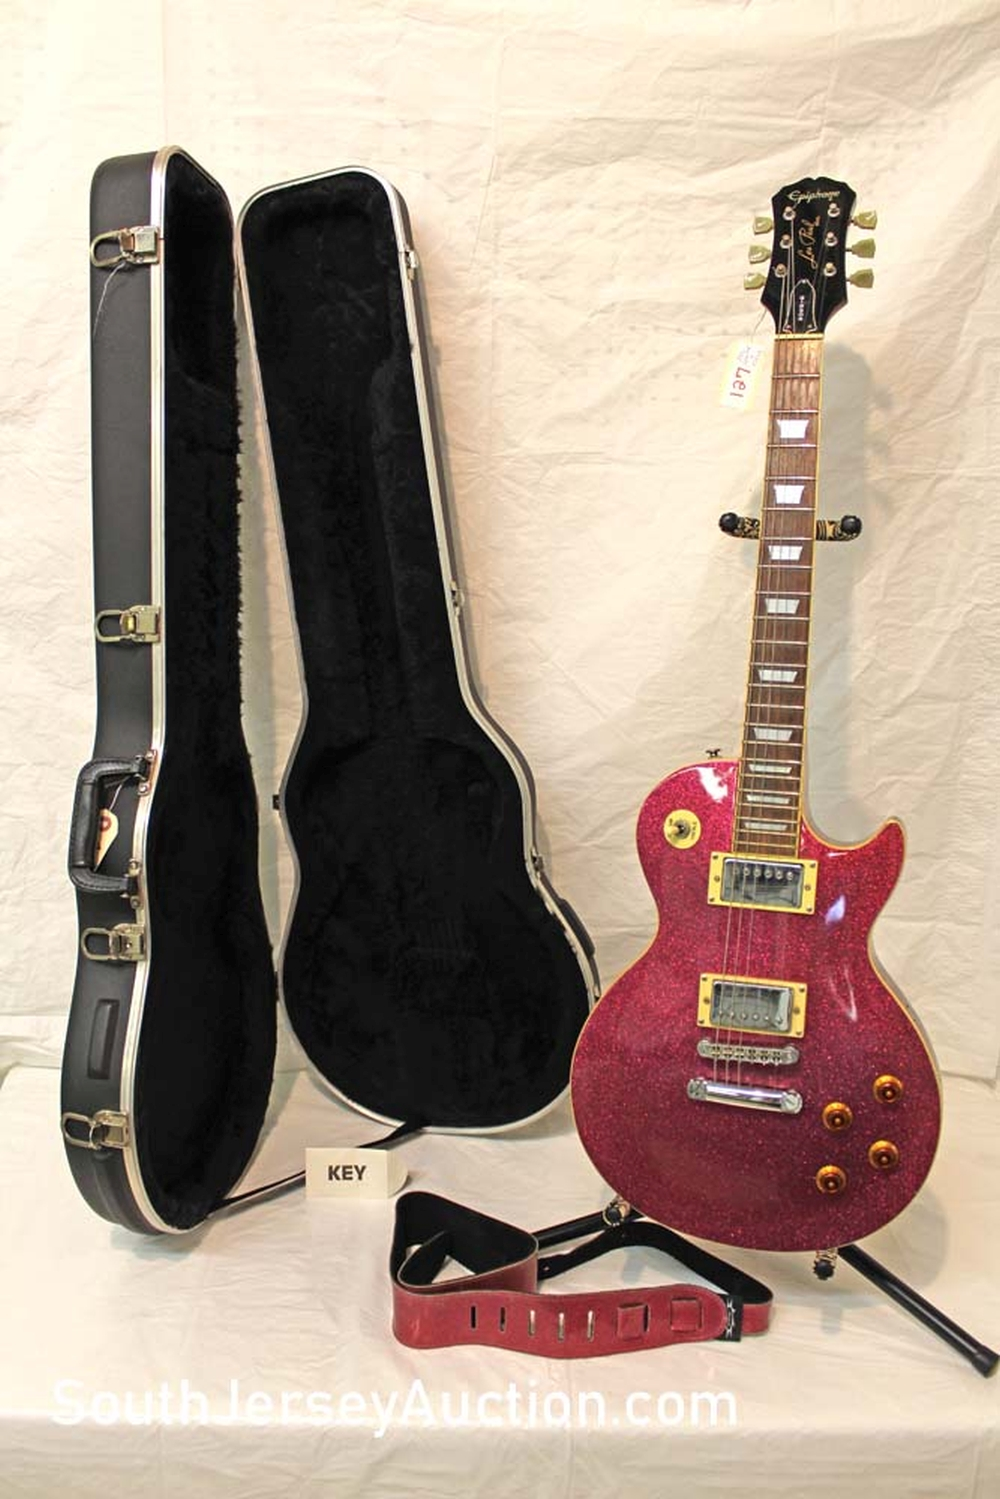 2002 RARE Epiphone Les Paul Custom Shop guitar, Gibson, made in Korea, Sparkle Pink, made by Gibson,  limited edition, set through neck with matching strap, s/n U 7021121, has chip, with hard shell SKB case, case key, all original, fair condition